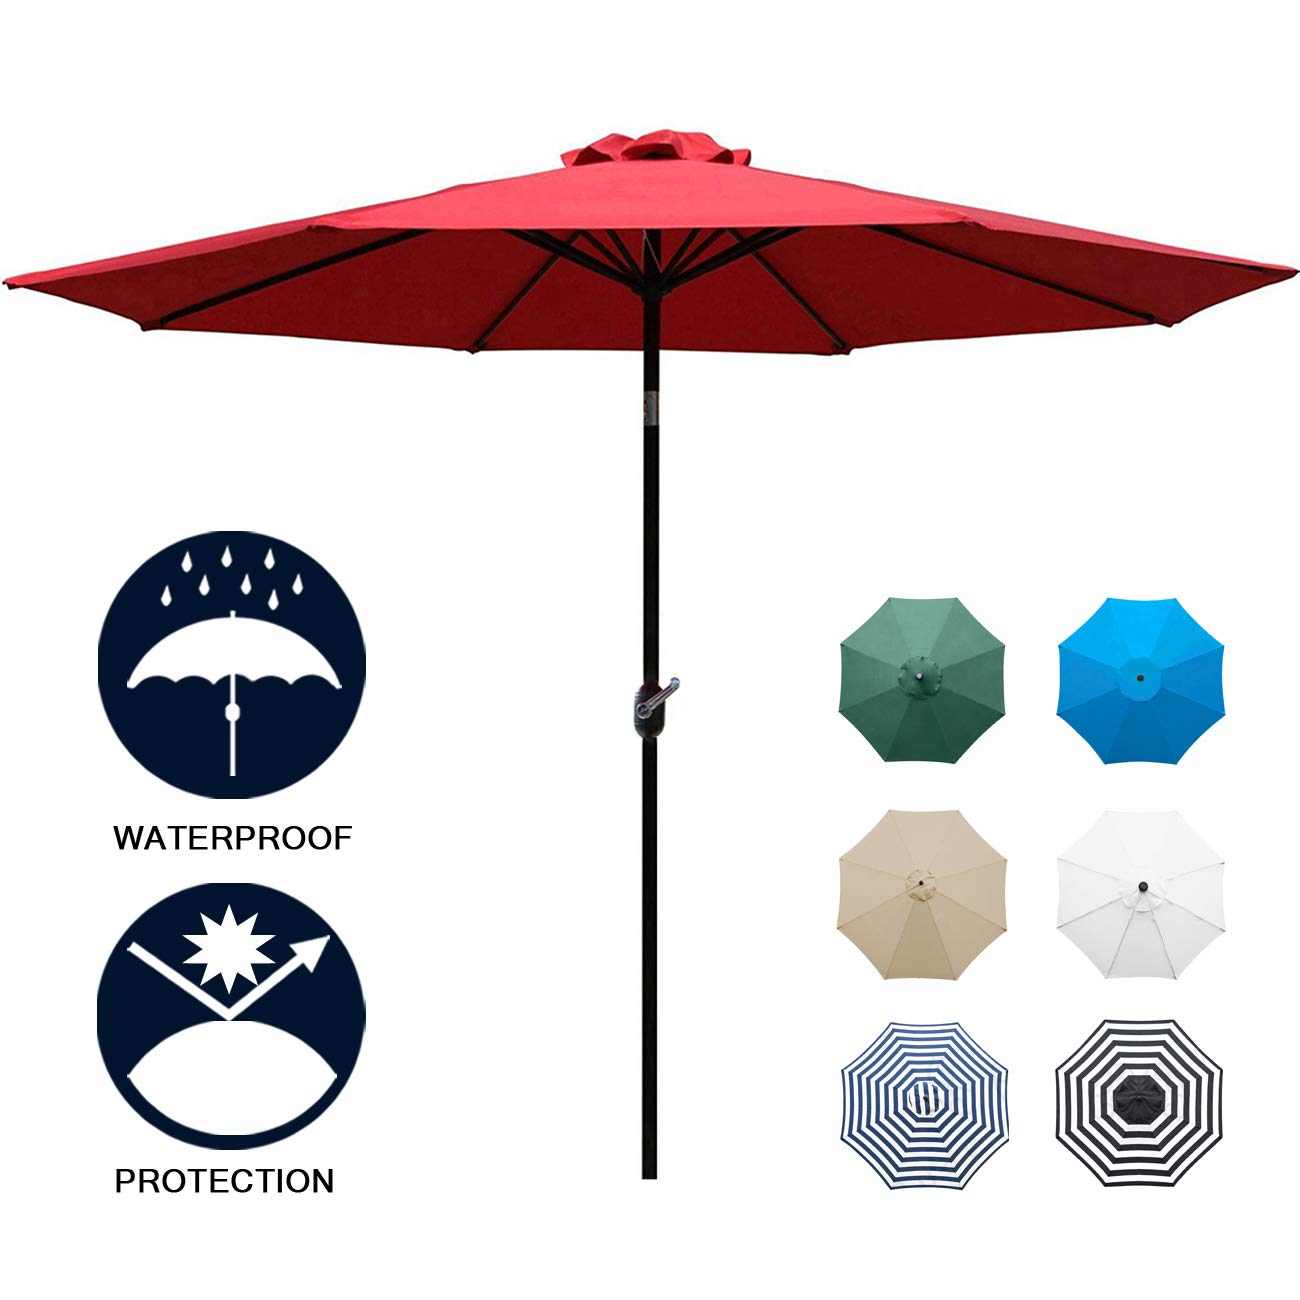 3e698f5f1c89e Amazon.com : Sunnyglade 9' Patio Umbrella Outdoor Table Umbrella with 8  Sturdy Ribs (Red) : Garden & Outdoor